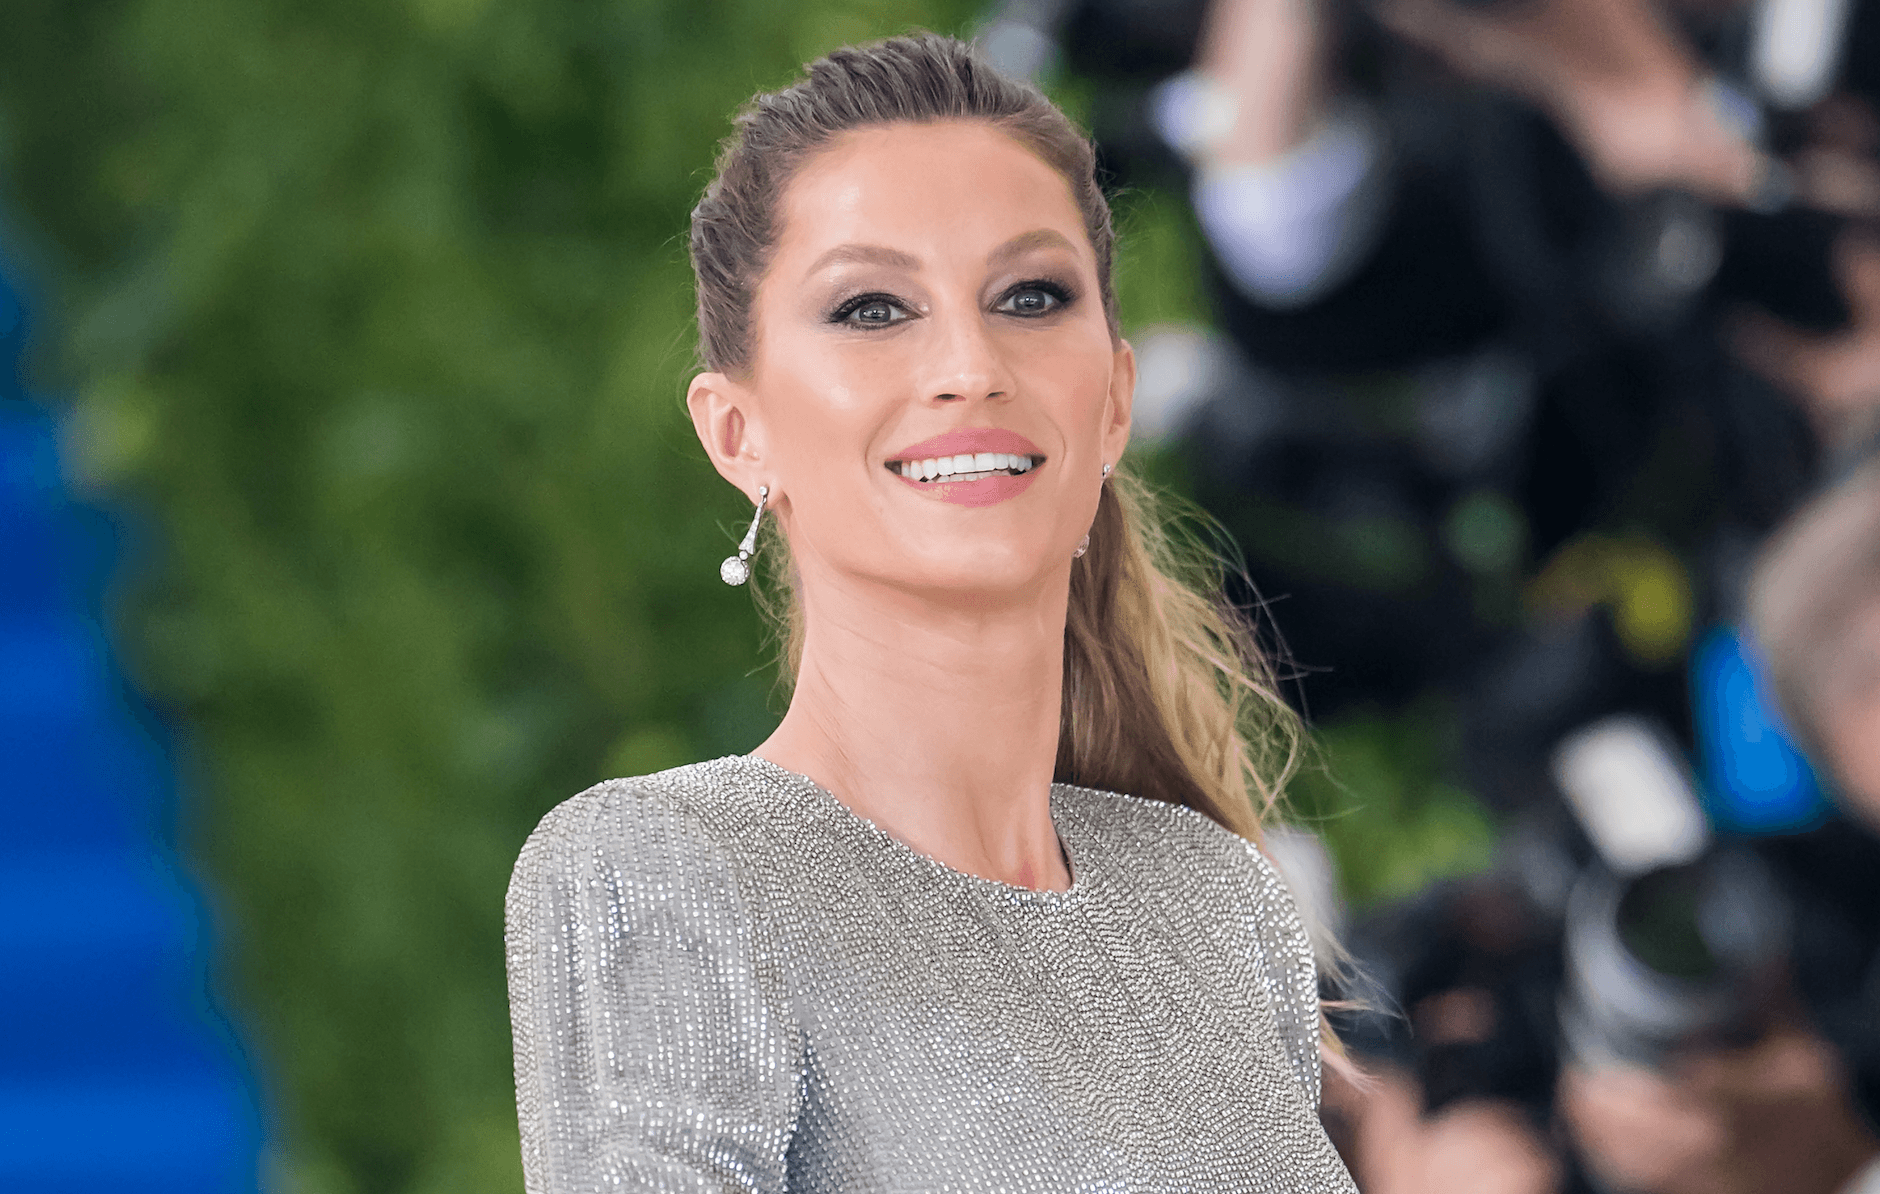 Gisele Bündchen Stuns Makeup-Free on The Cover of Vogue Italia